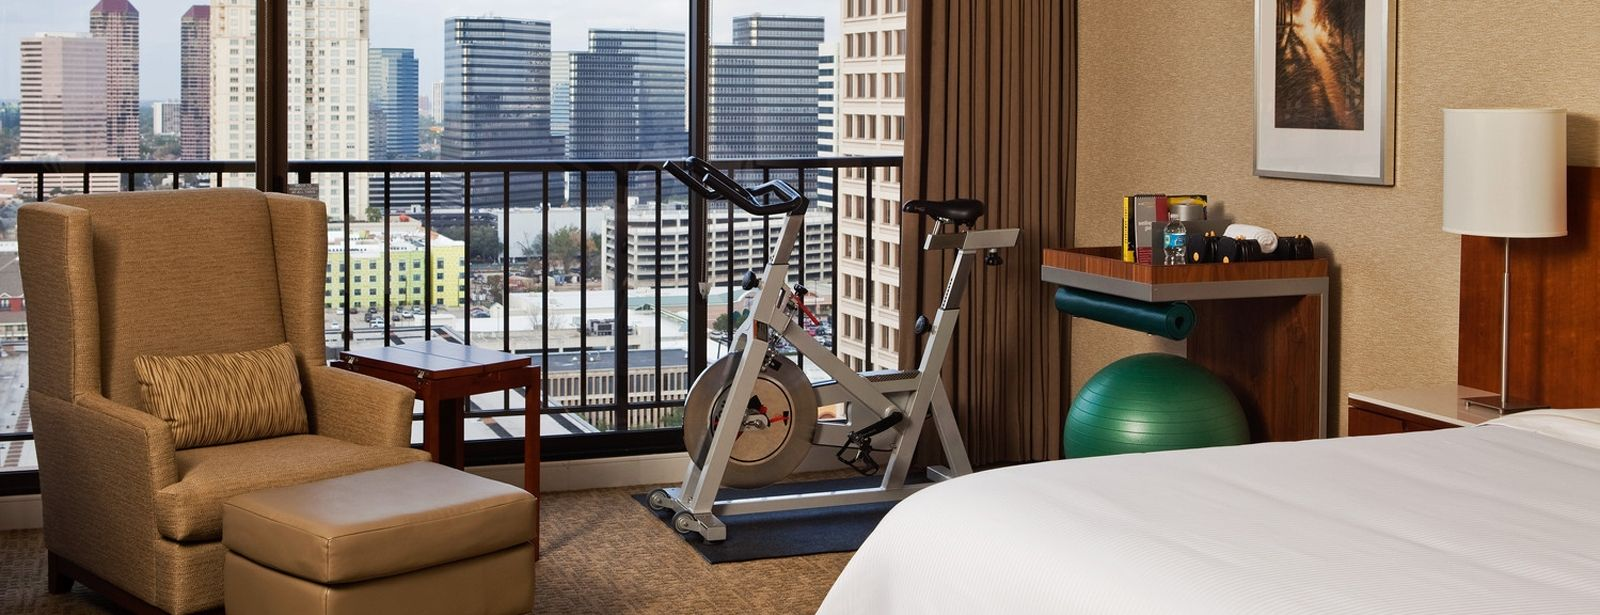 Fitness rooms in Houston - The Westin Oaks Houston at the Galleria